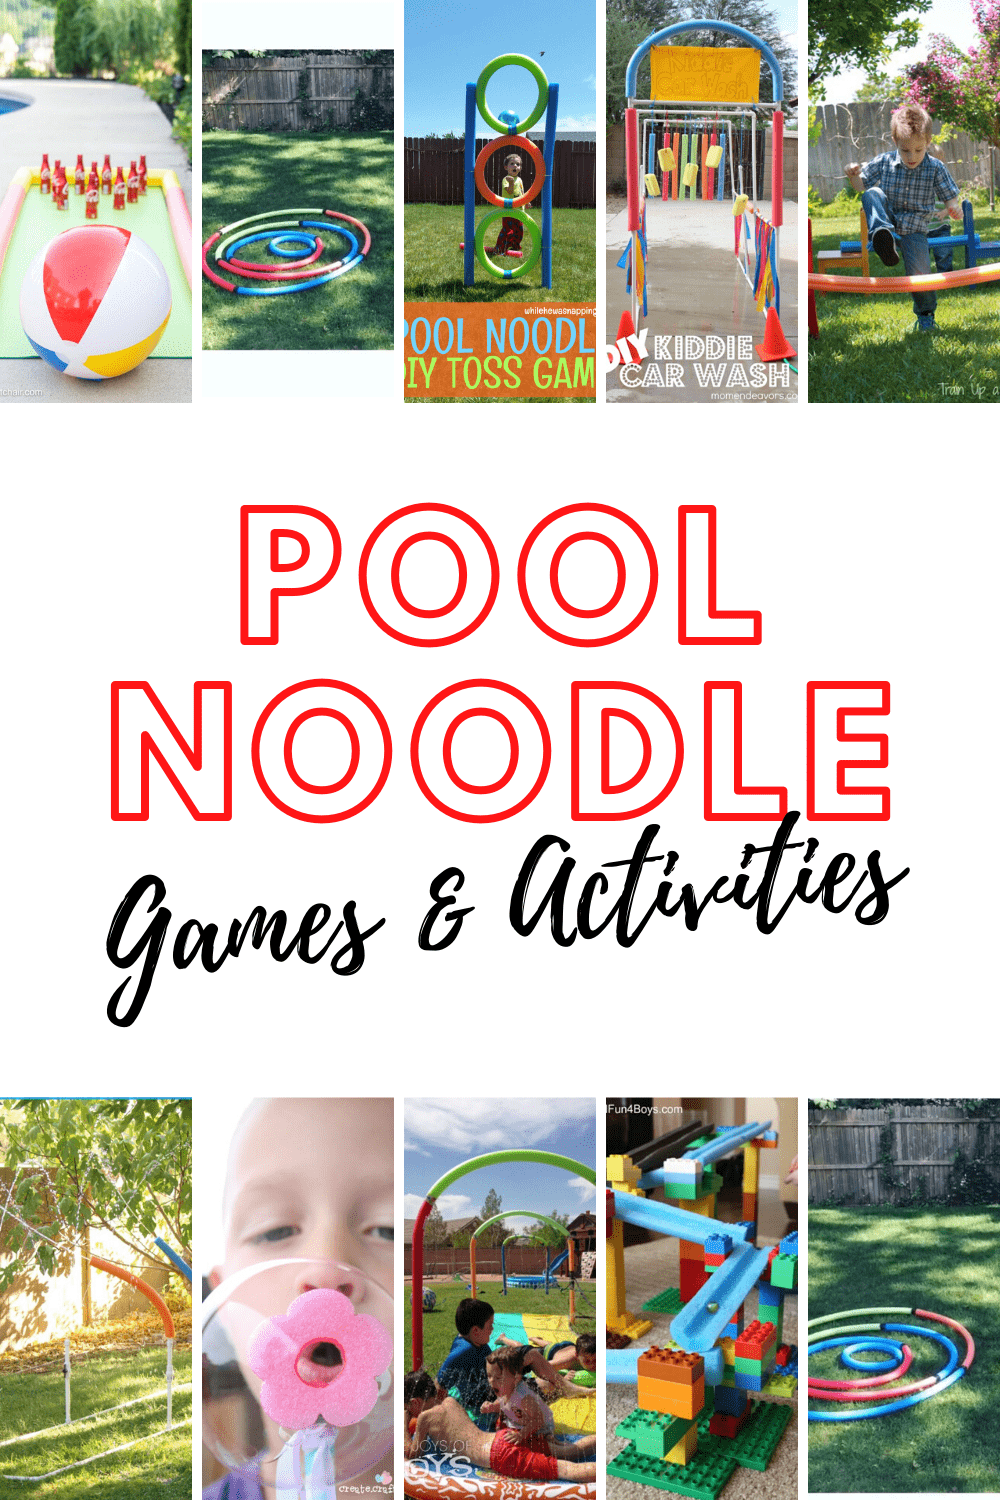 Did you know that there are tons of things you can do or make with pool noodles? If you love to DIY, try one of these awesome things to do with pool noodles this summer.